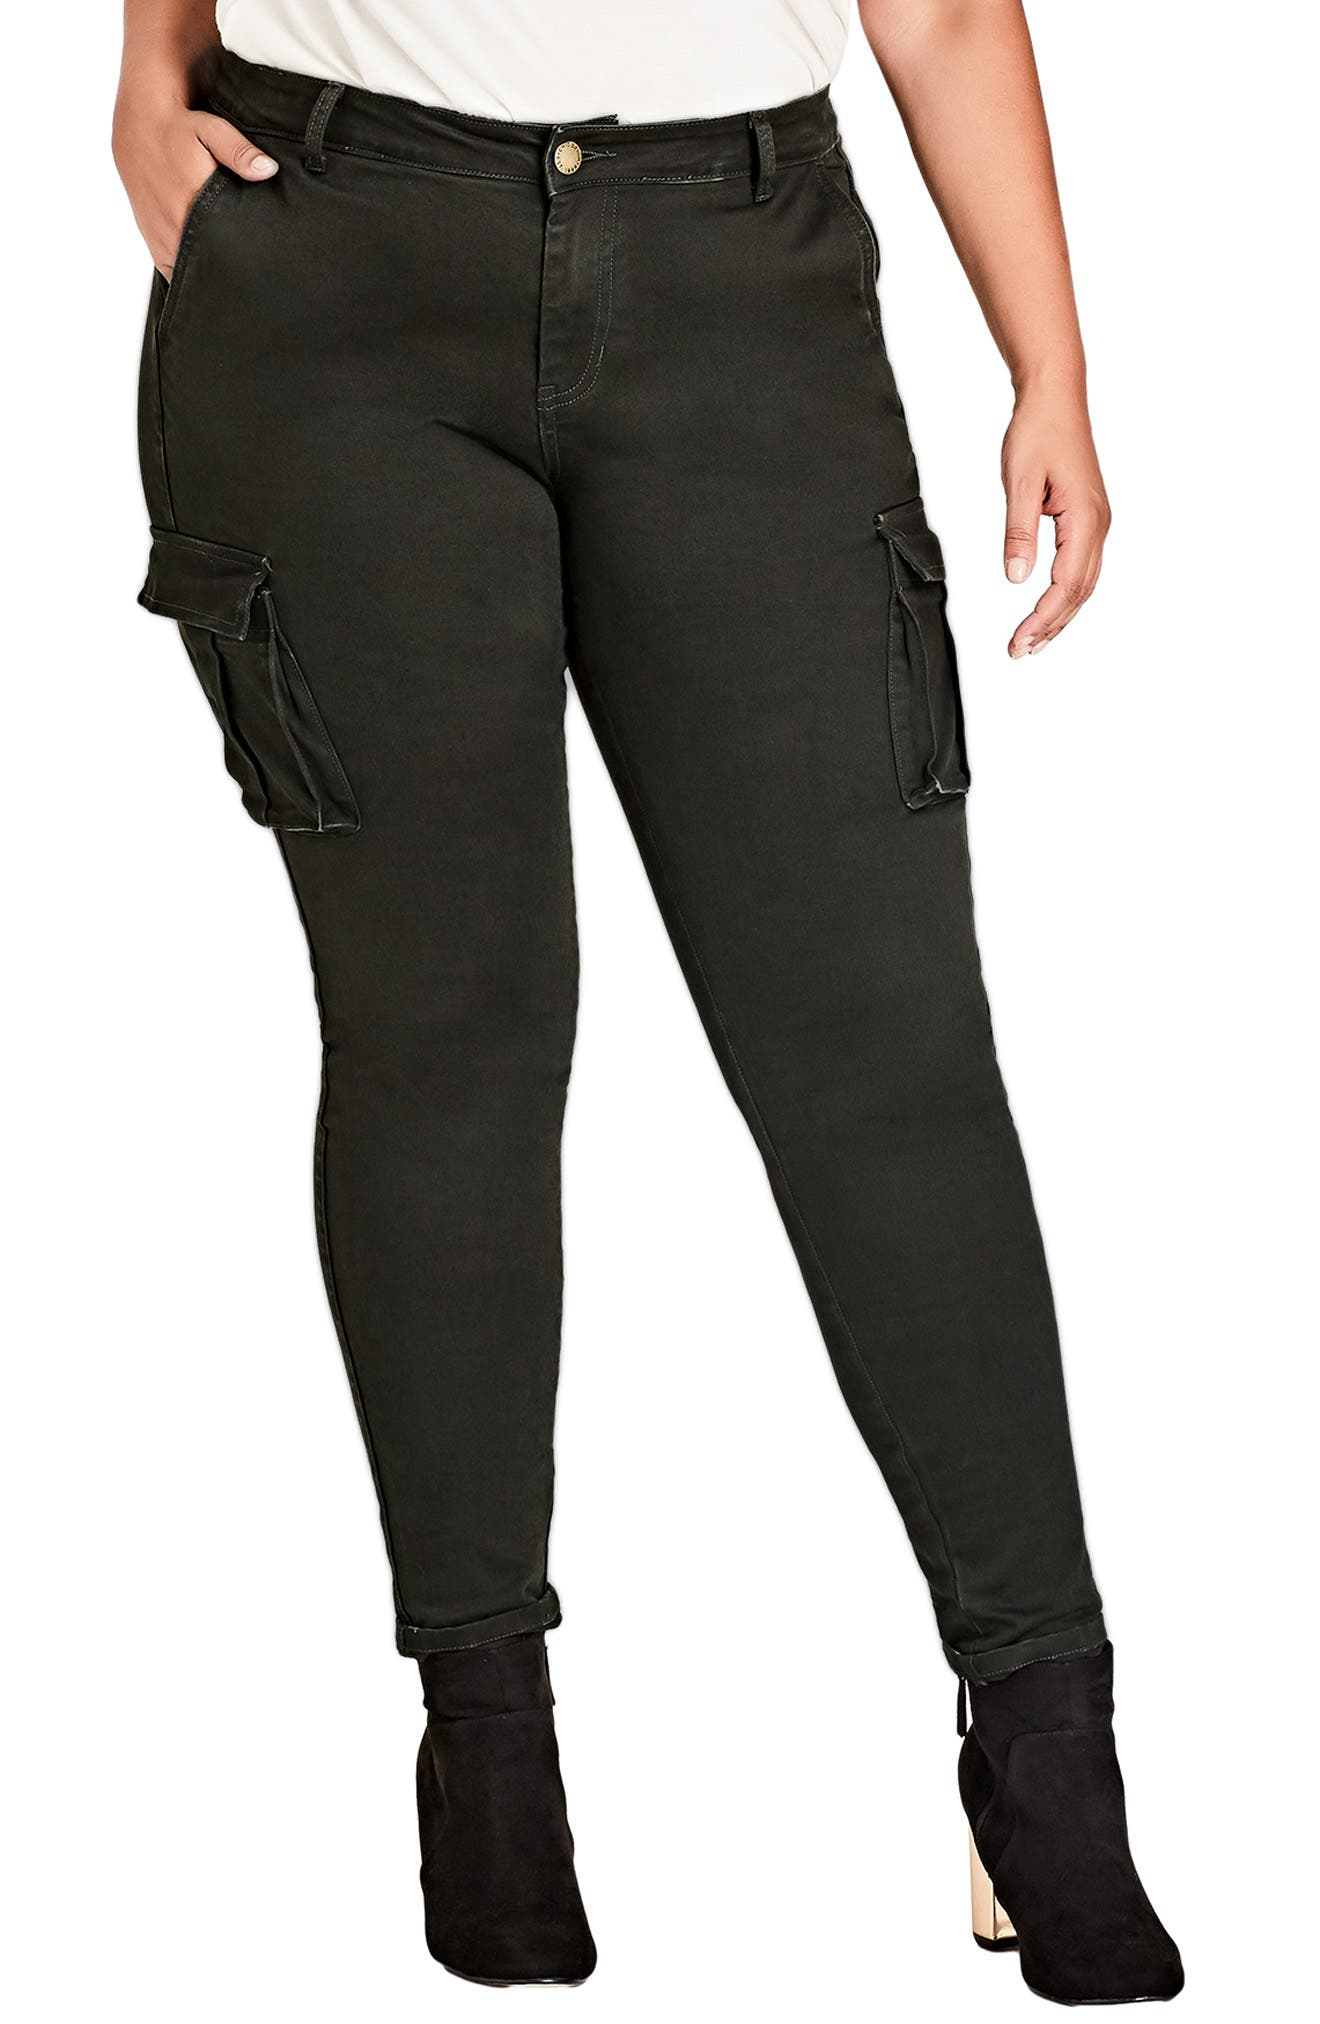 Plus Size City Chic Jungle Frenzy Cargo Pants, Green